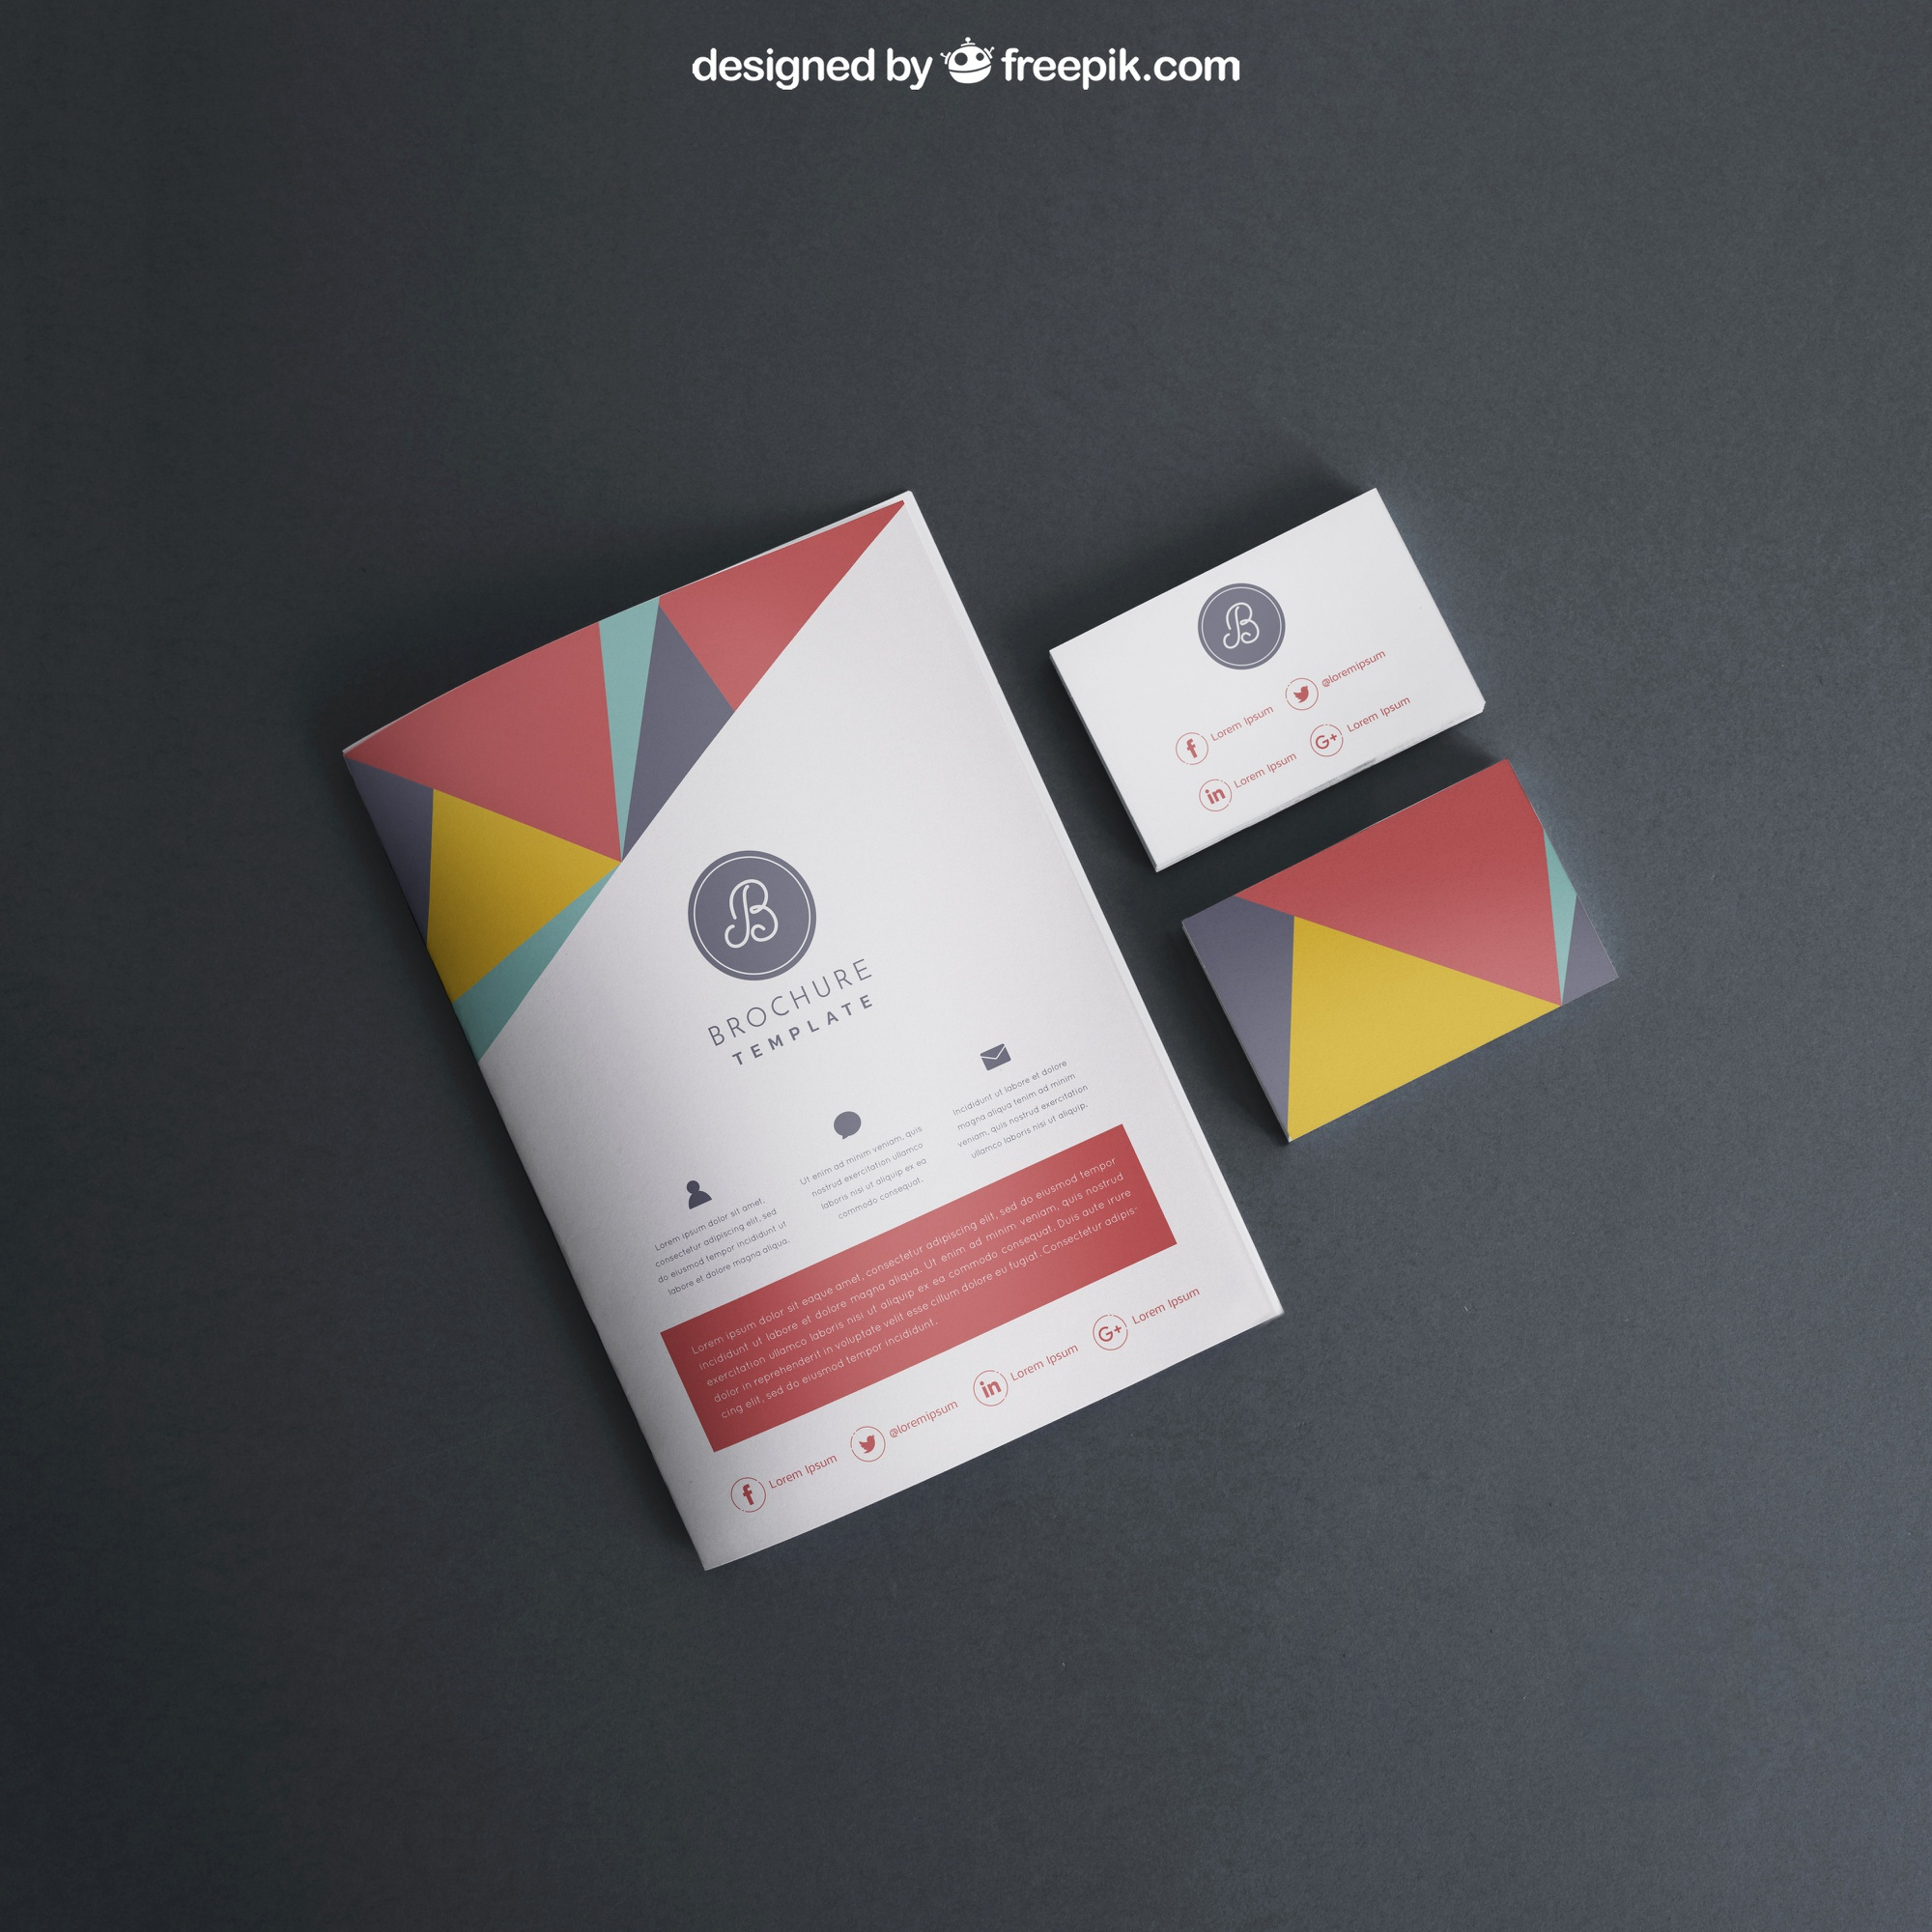 Mockup with cover and business cards